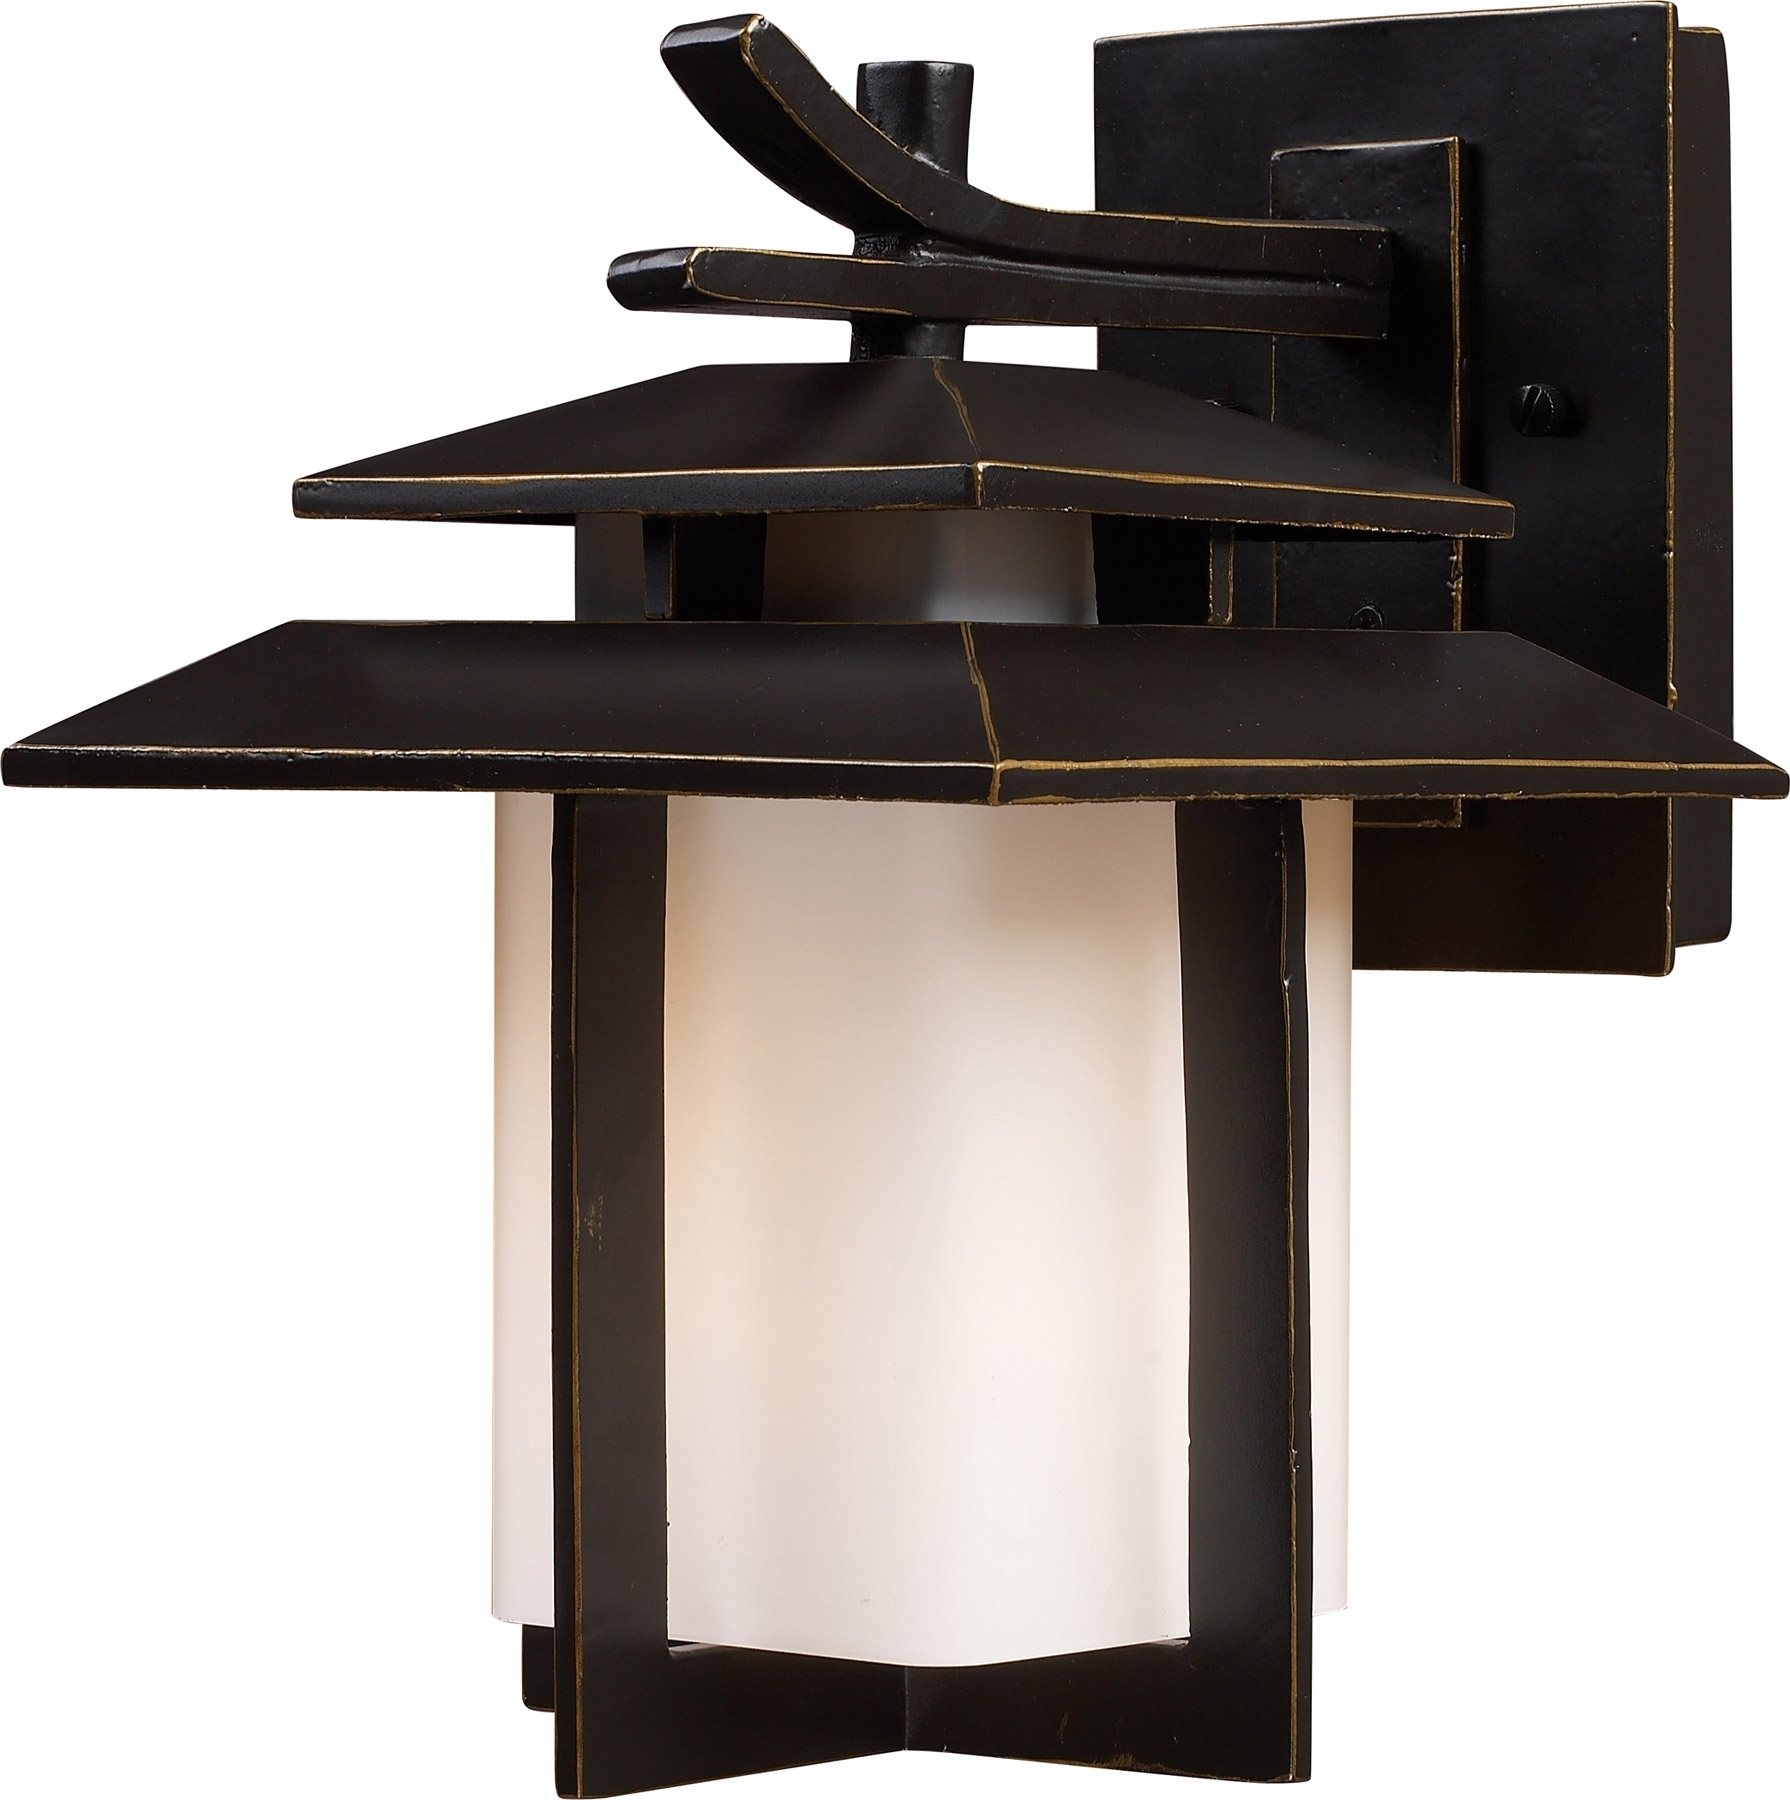 Japanese Lantern Wood Outdoor Wall Mounted Lighting Fixtures Painted pertaining to Outdoor Hanging Japanese Lanterns (Image 11 of 20)